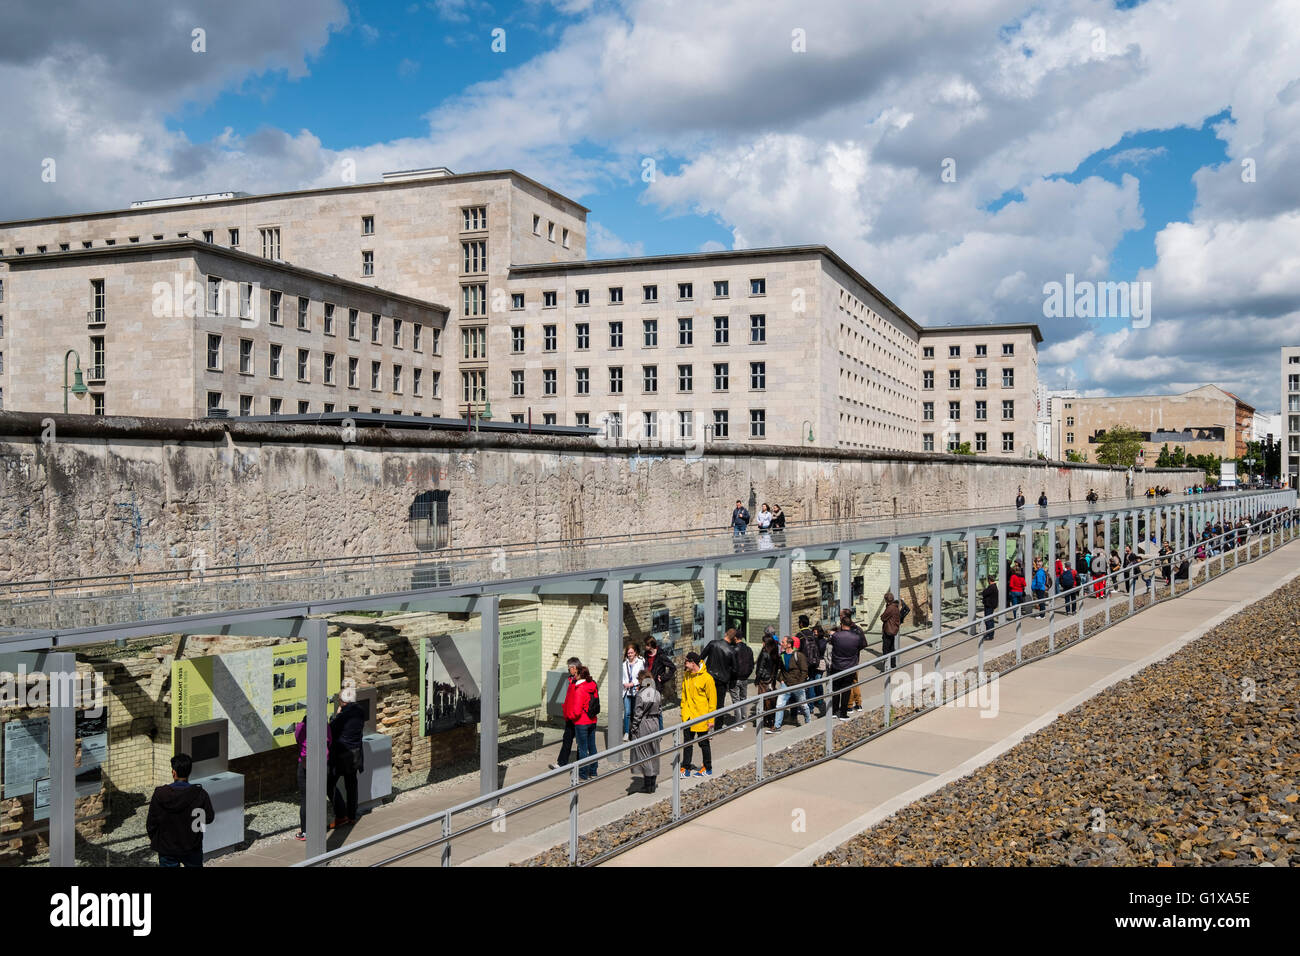 View of tourists visiting outdoor museum at Topography of Terror former Gestapo headquarters in Berlin Germany - Stock Image